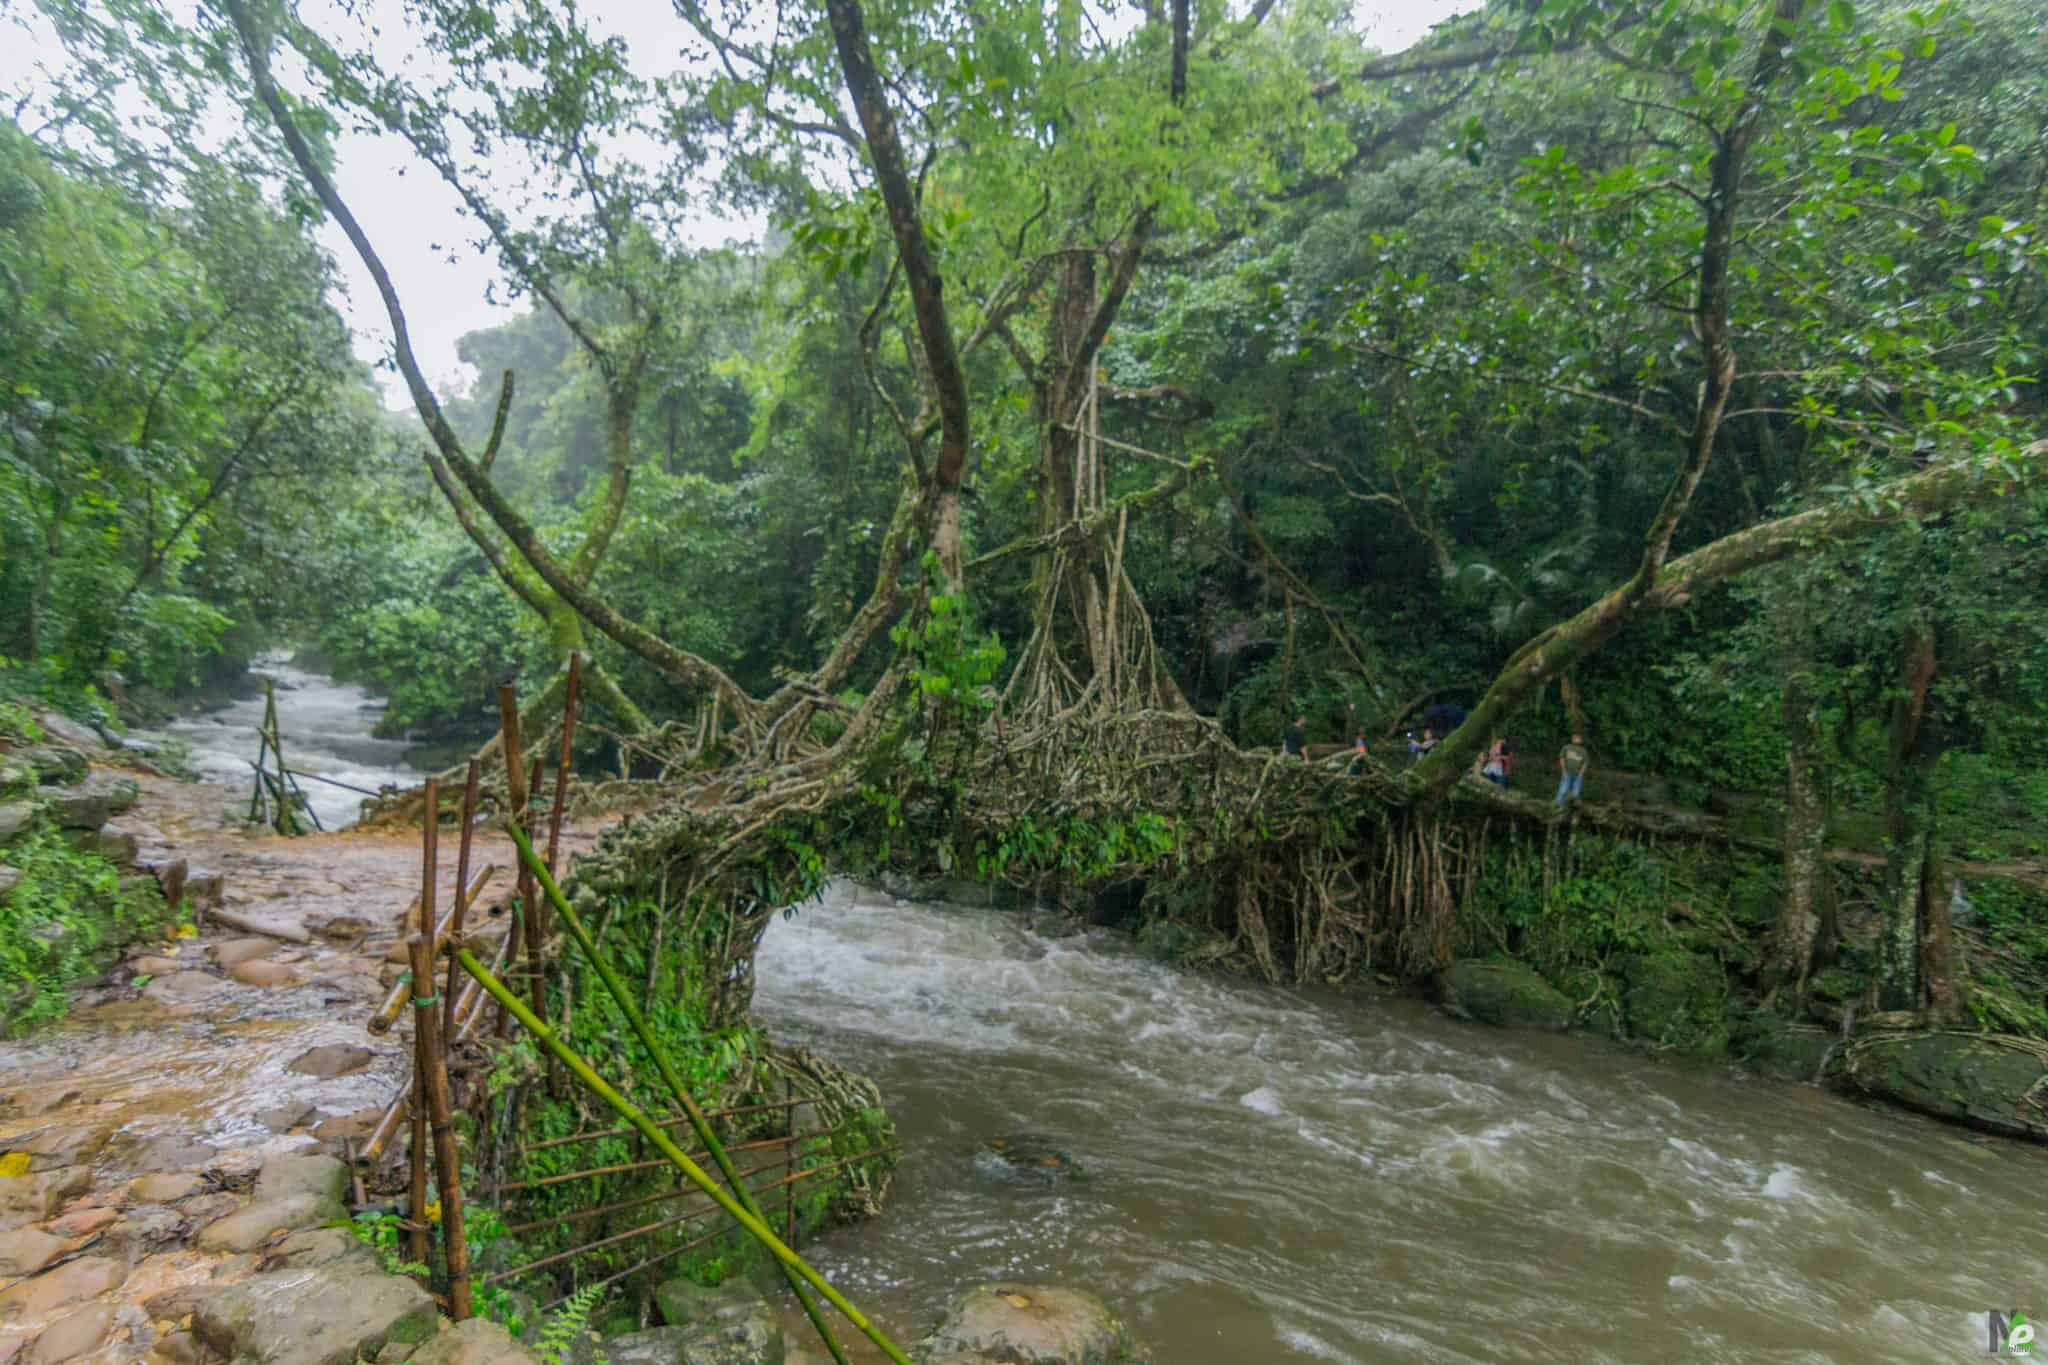 Living Root Bridge Of Nohwet, Riwai Mawlynnong